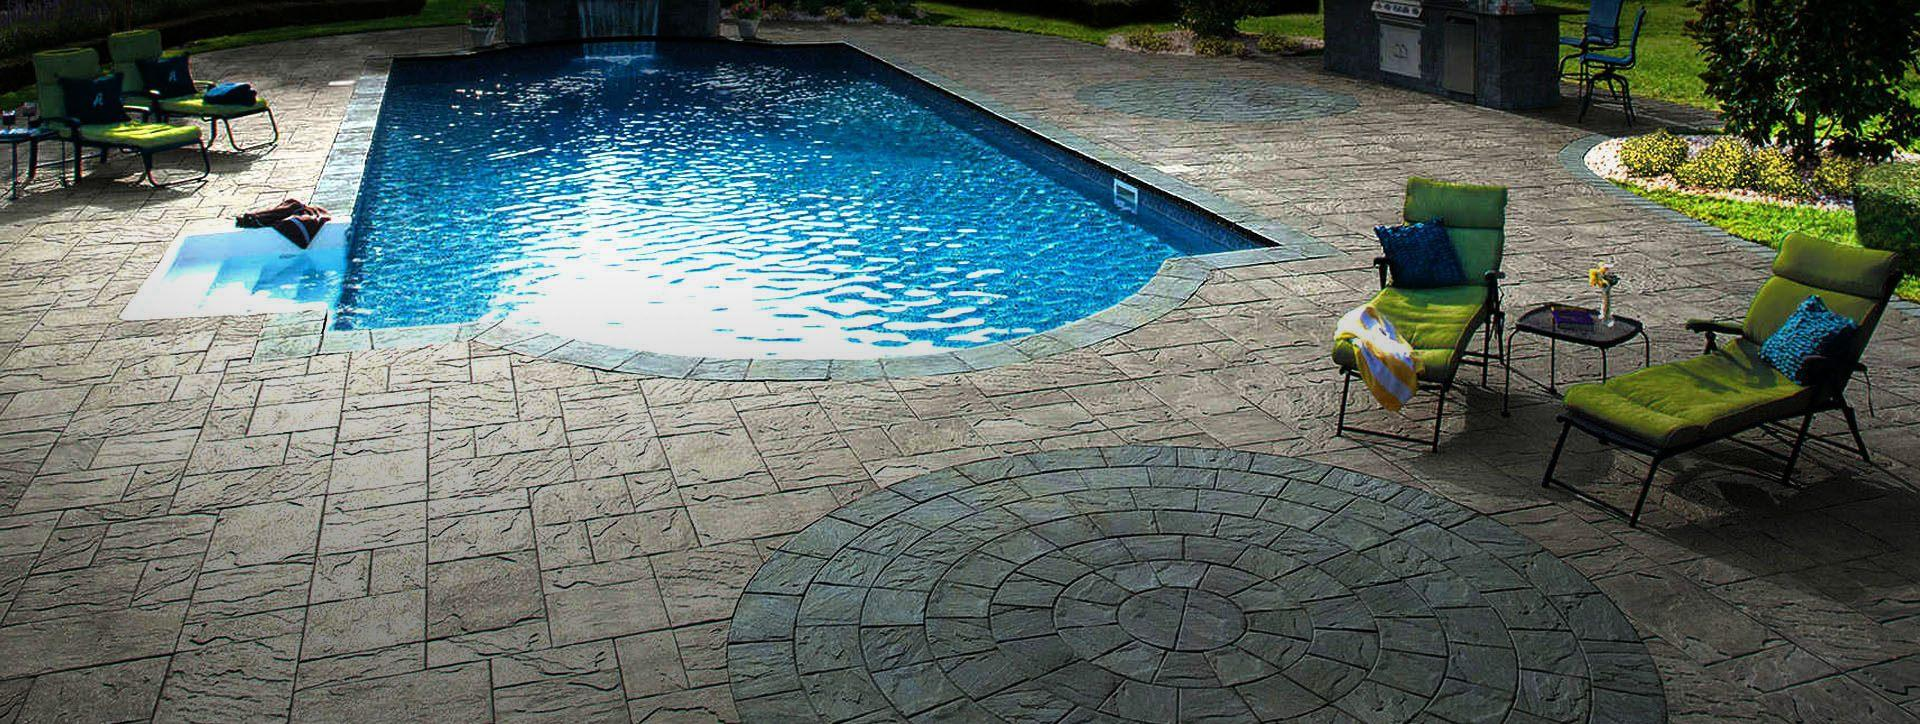 Ocean County patio nj paving Business Landscaping tips